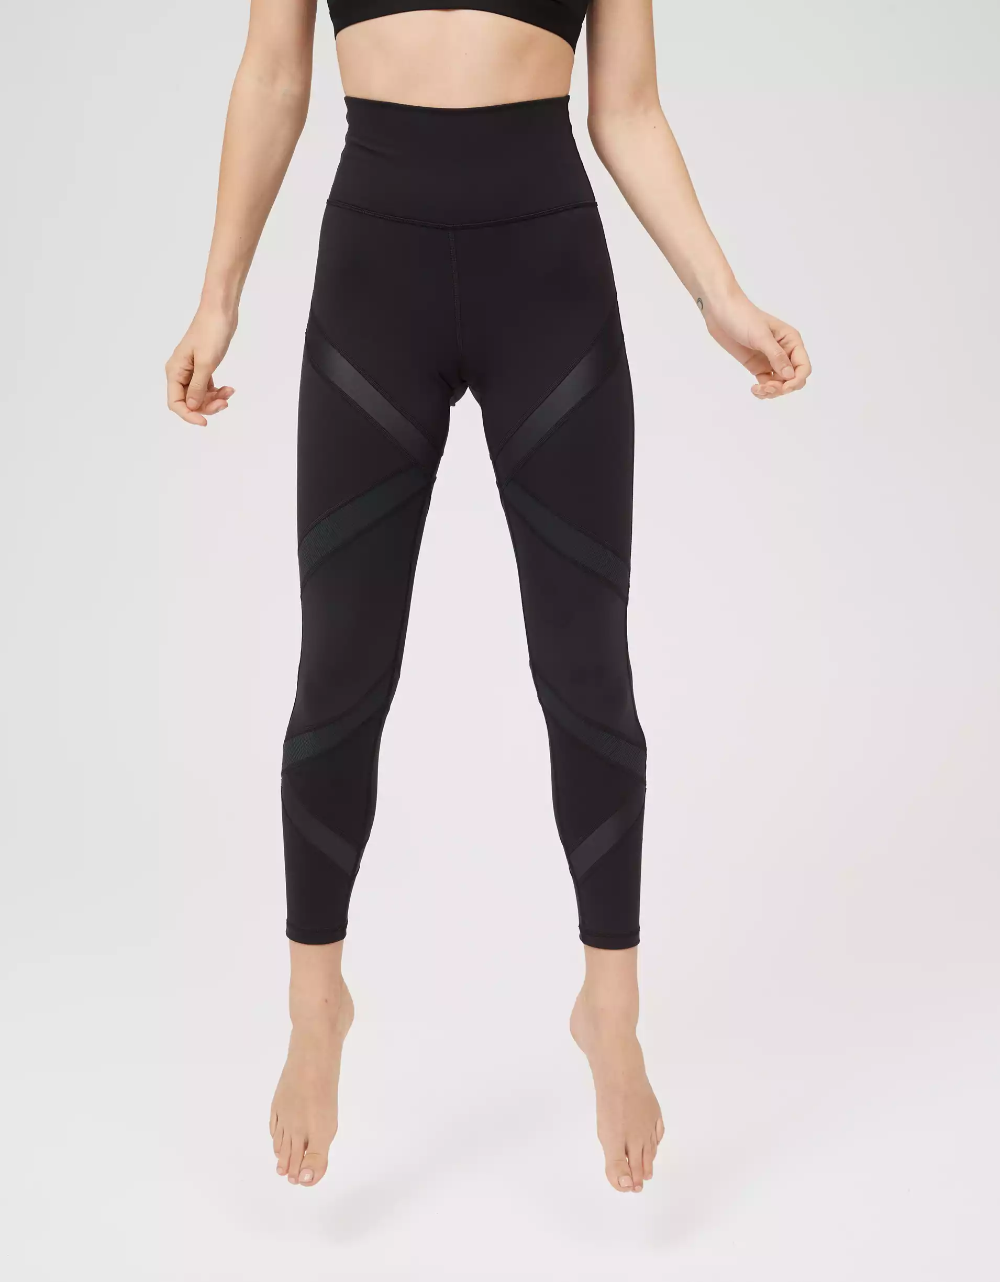 20+ High waisted ribbed leggings ideas in 2021